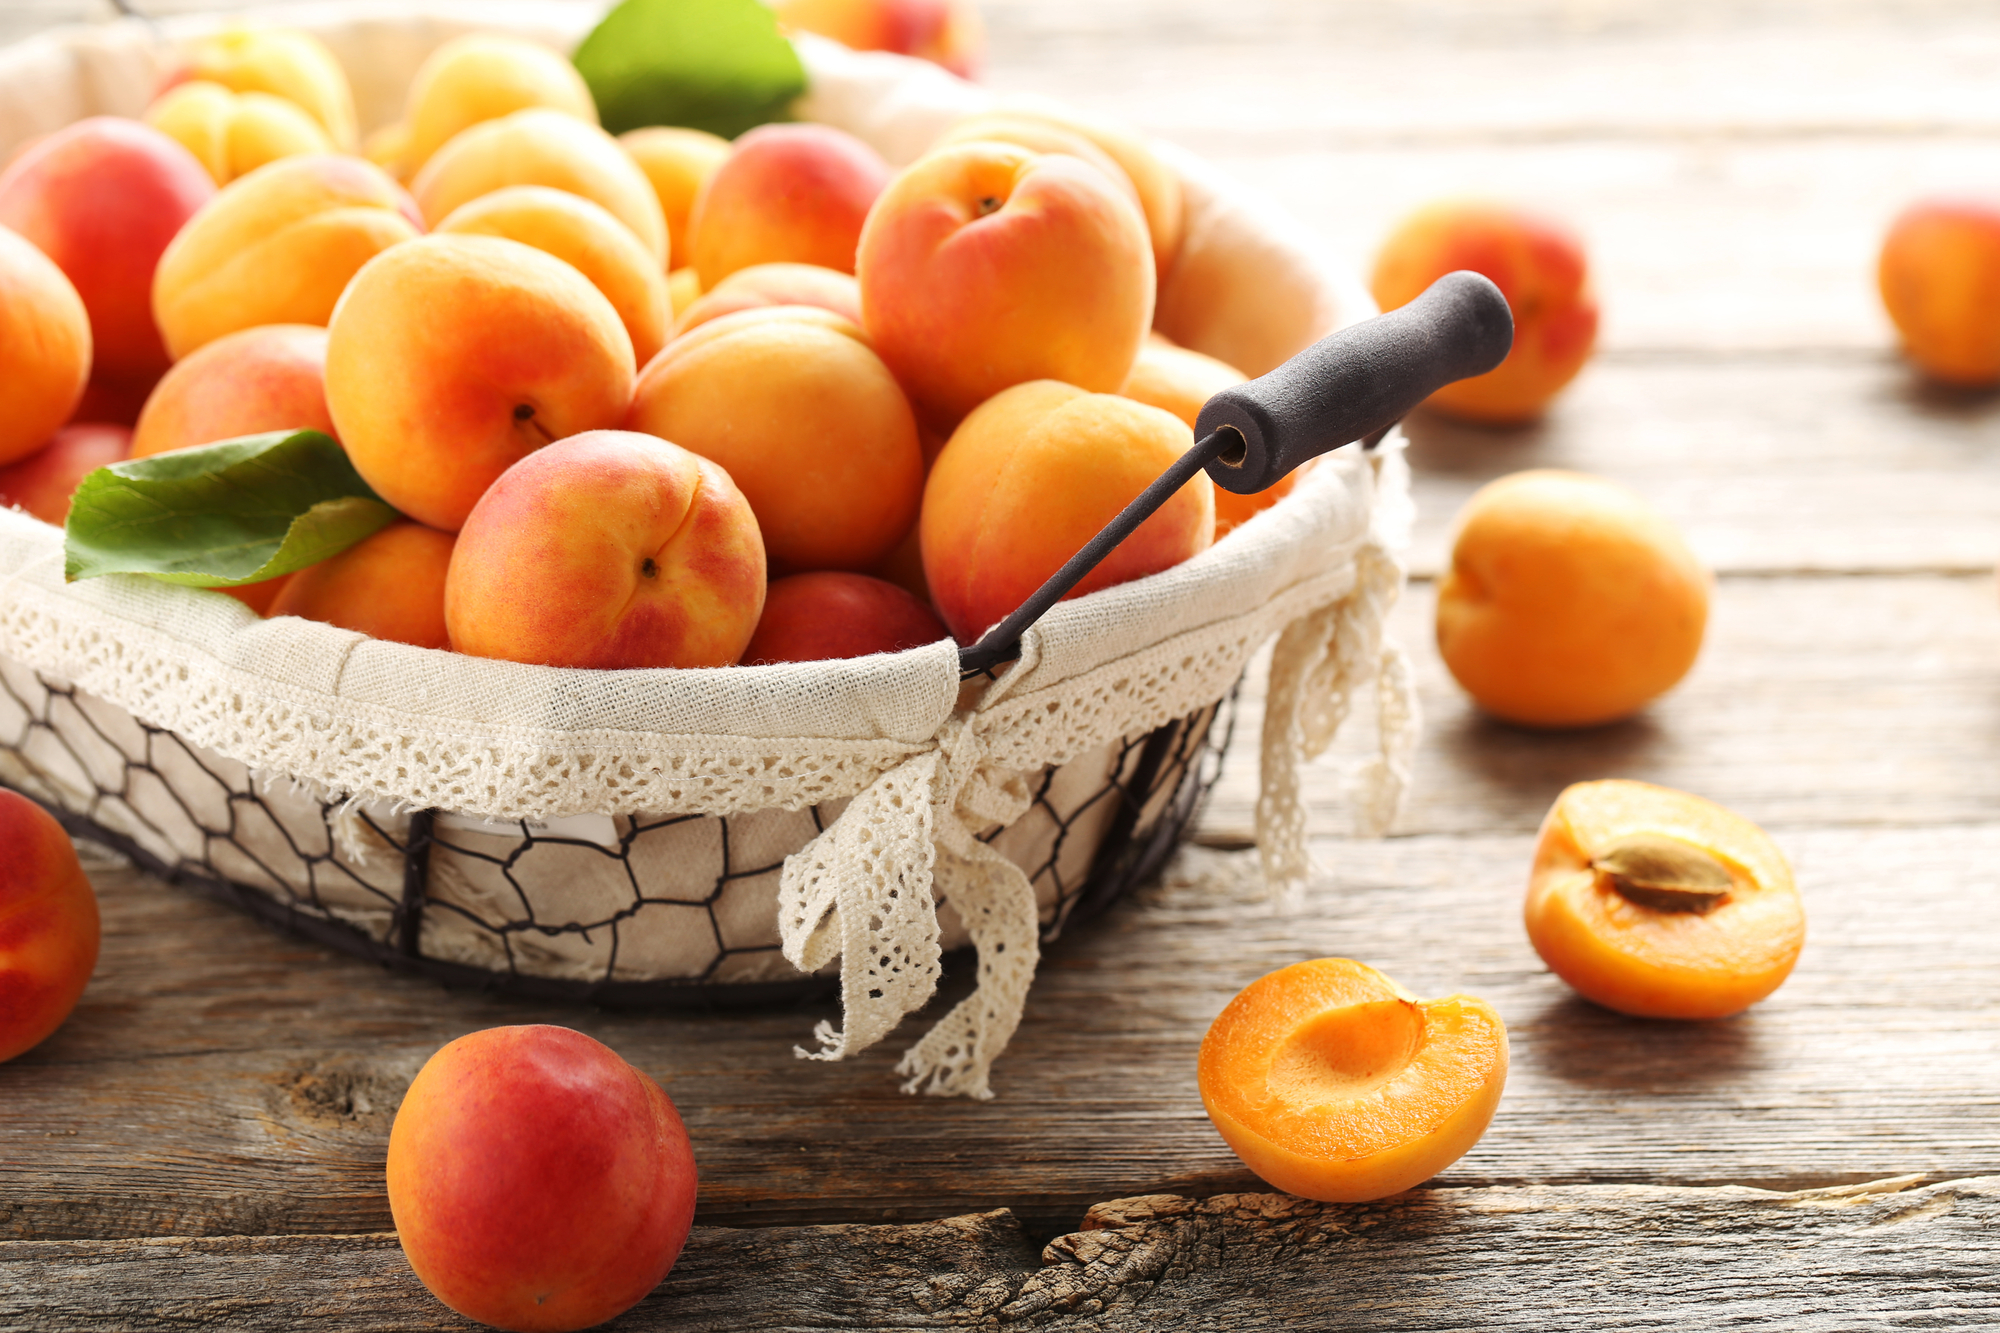 Ripe apricots fruit on grey wooden table